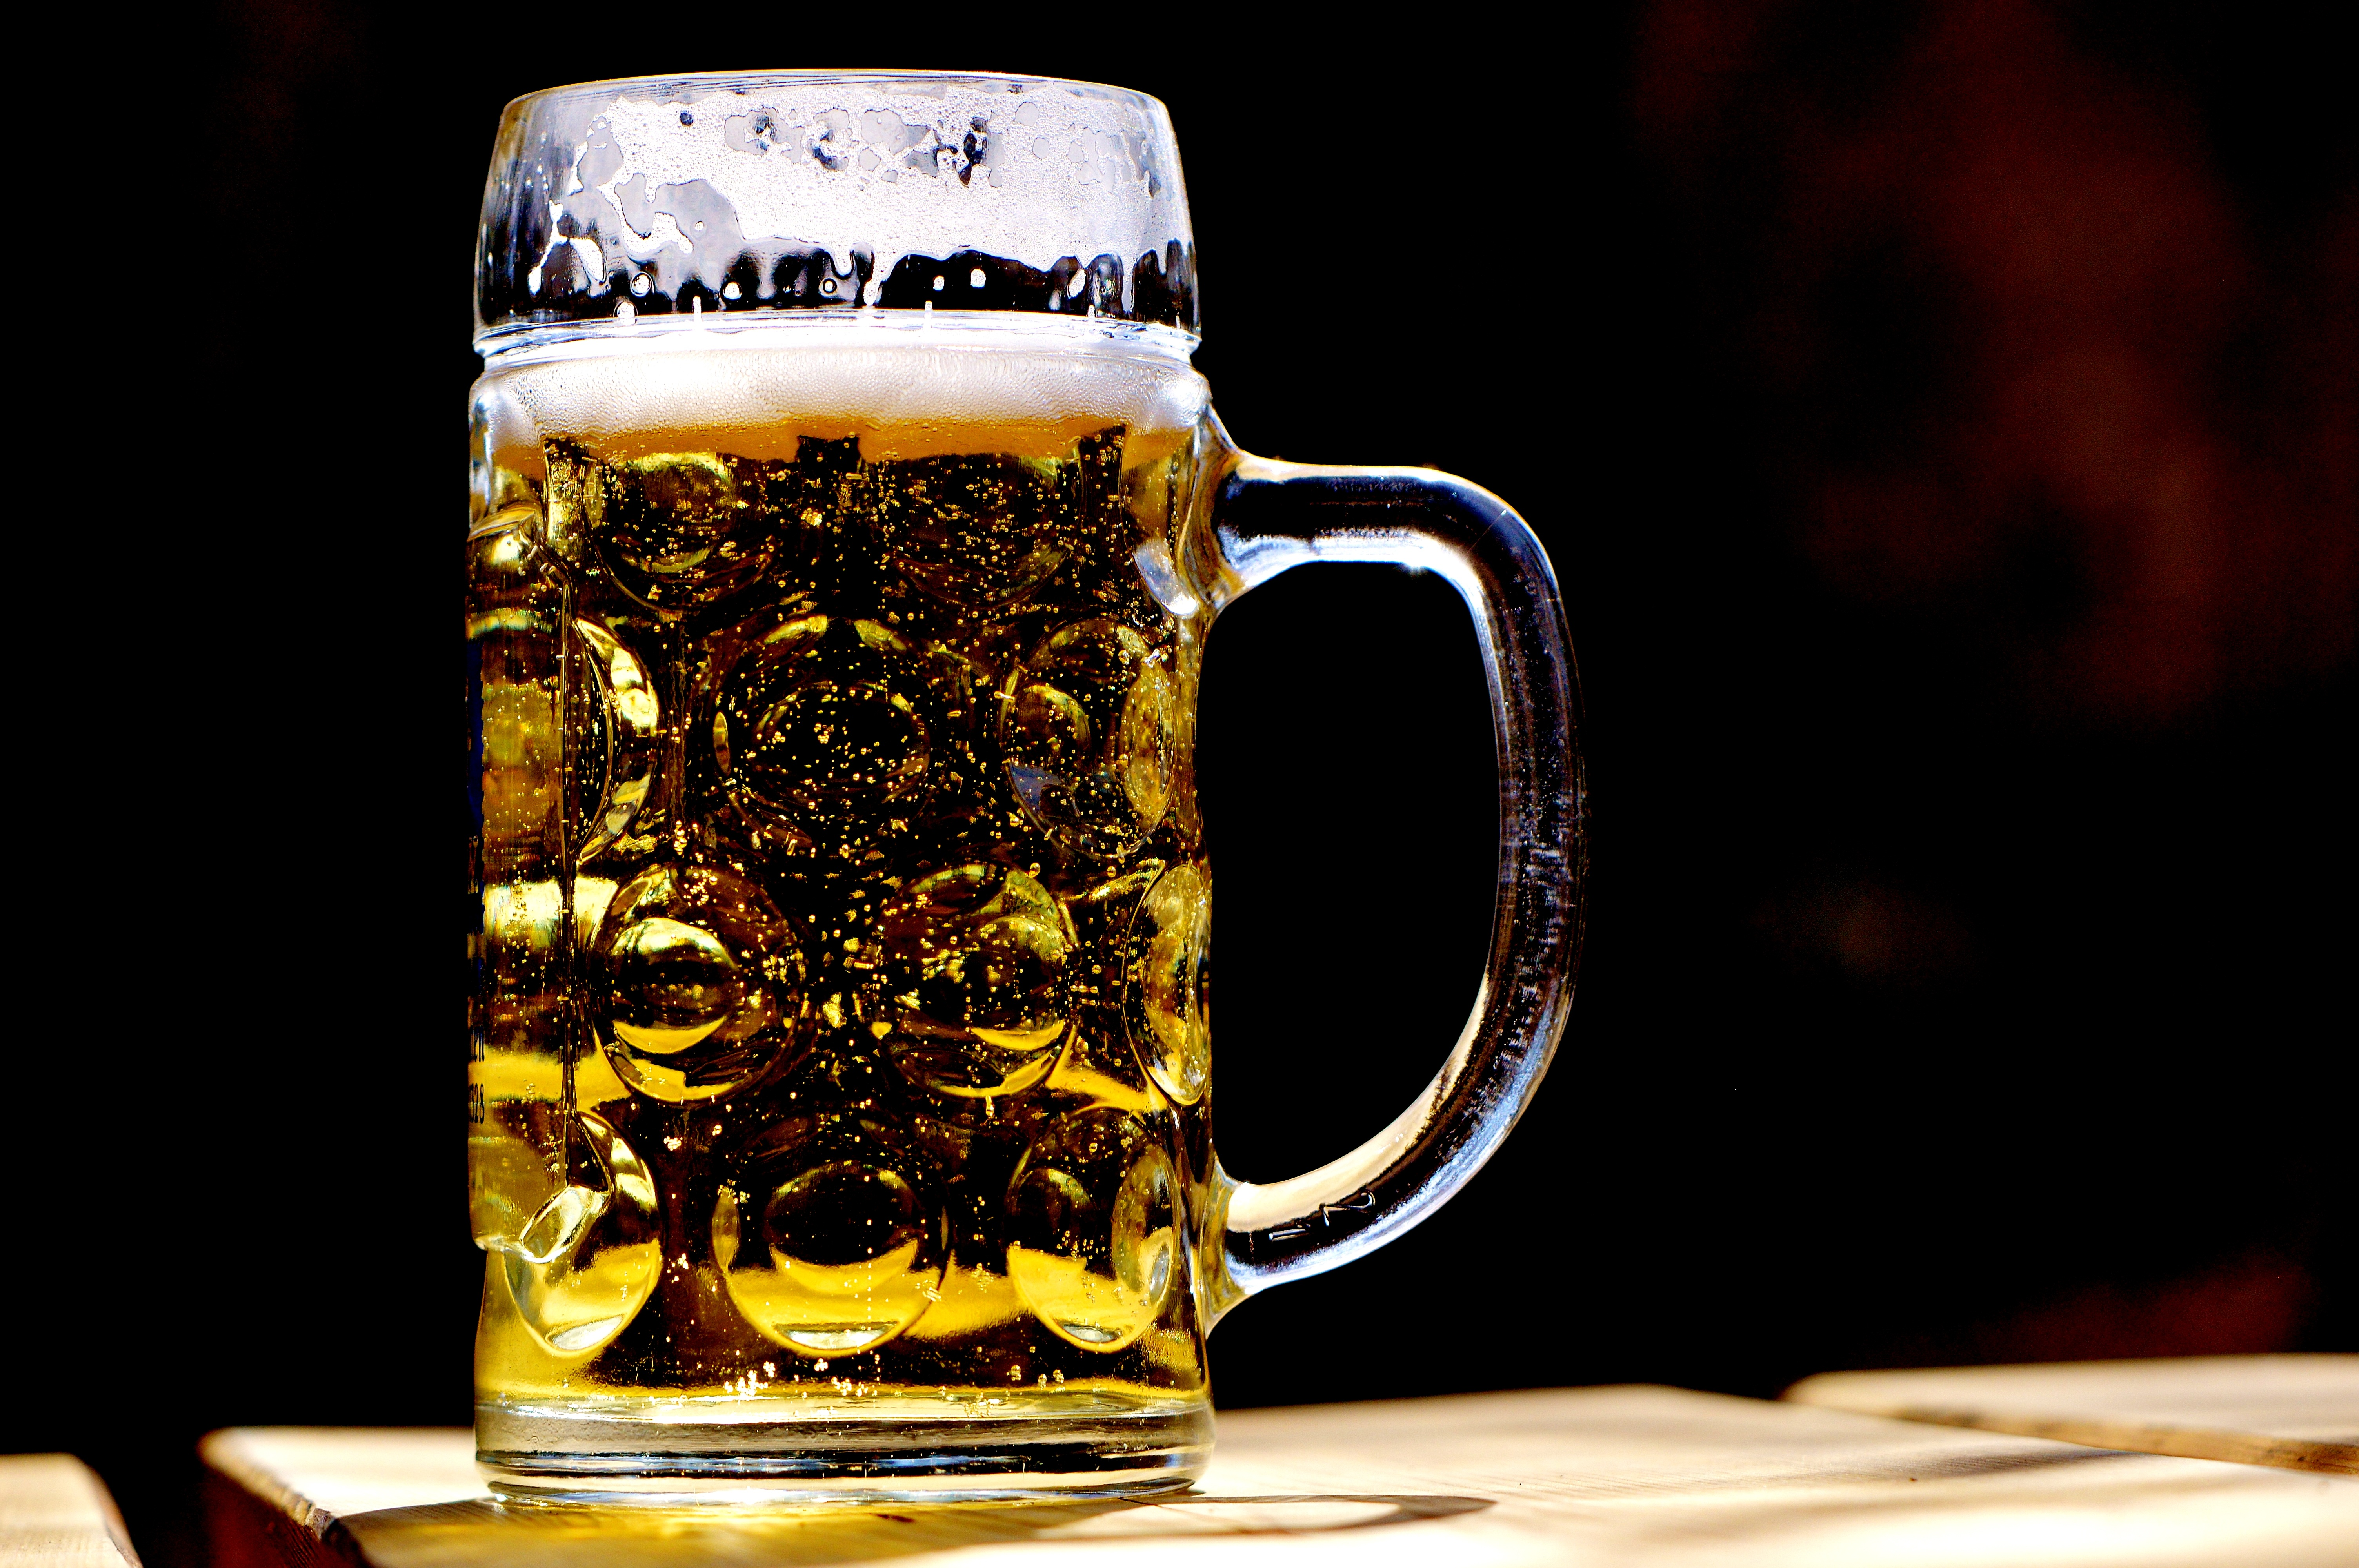 Beer, Mug, Refreshment, Beer Mug